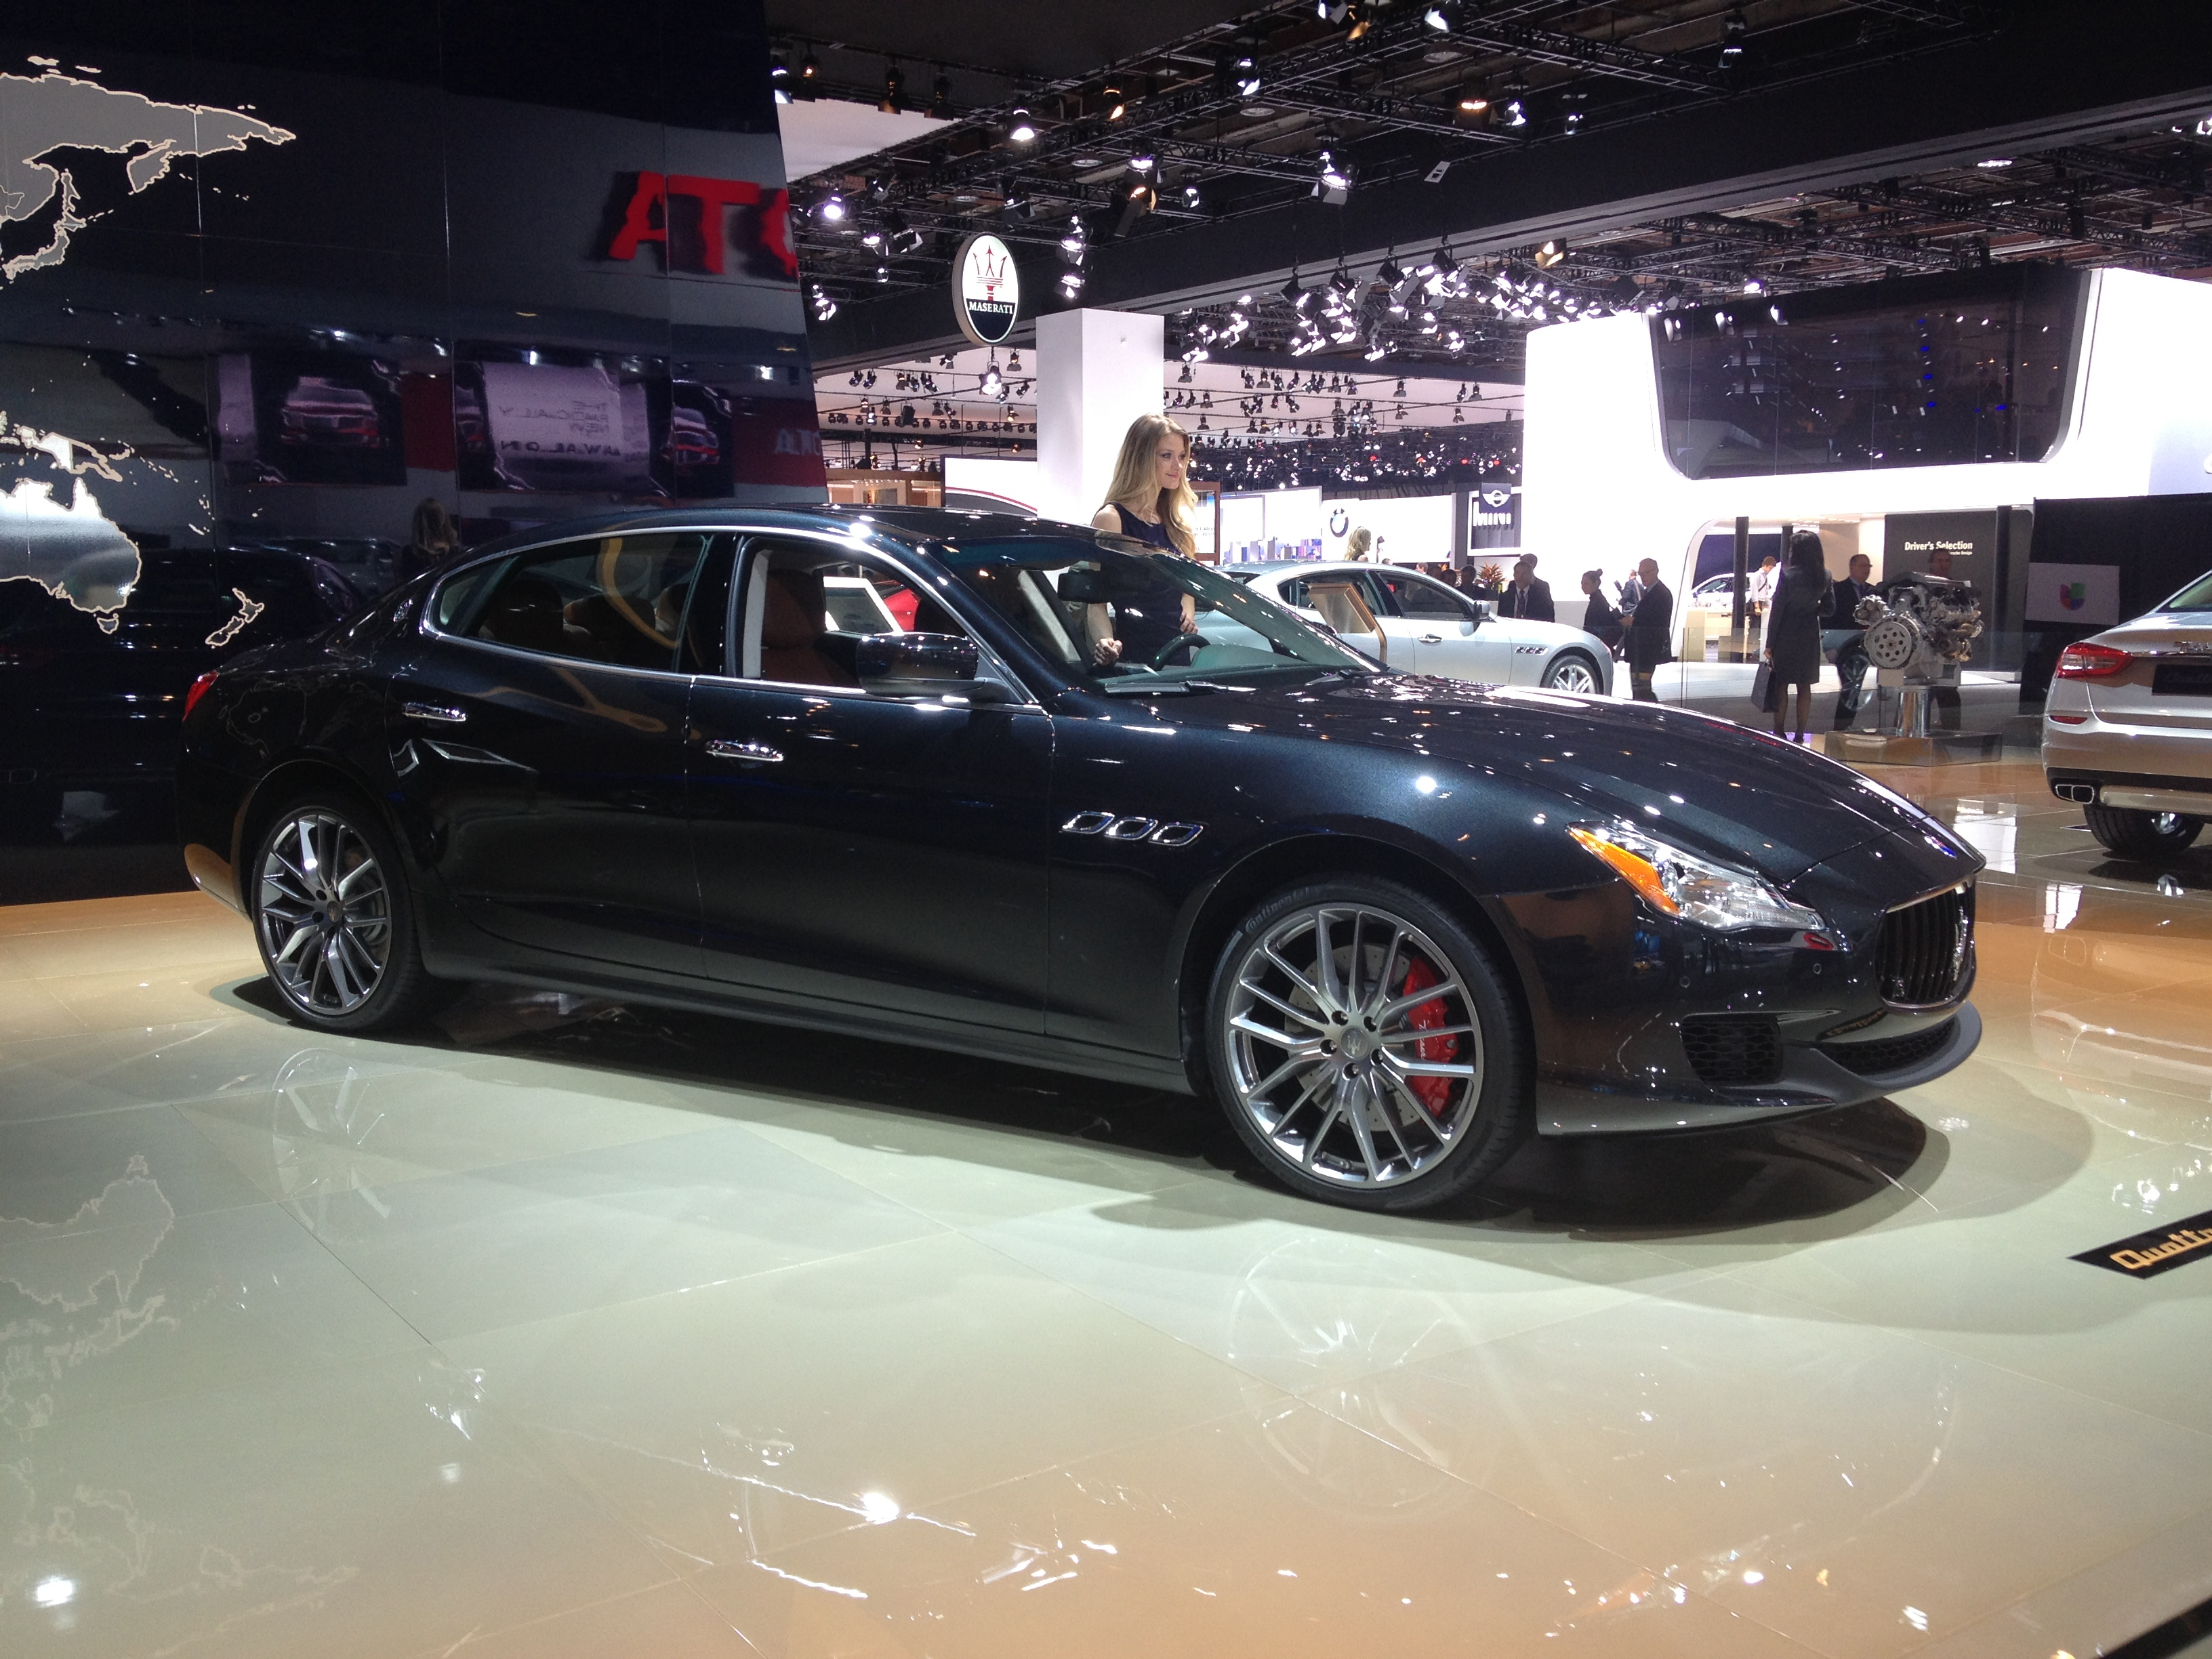 https://upload.wikimedia.org/wikipedia/commons/a/af/Maserati_Quattroporte_VI_at_NAIAS_2013.jpg